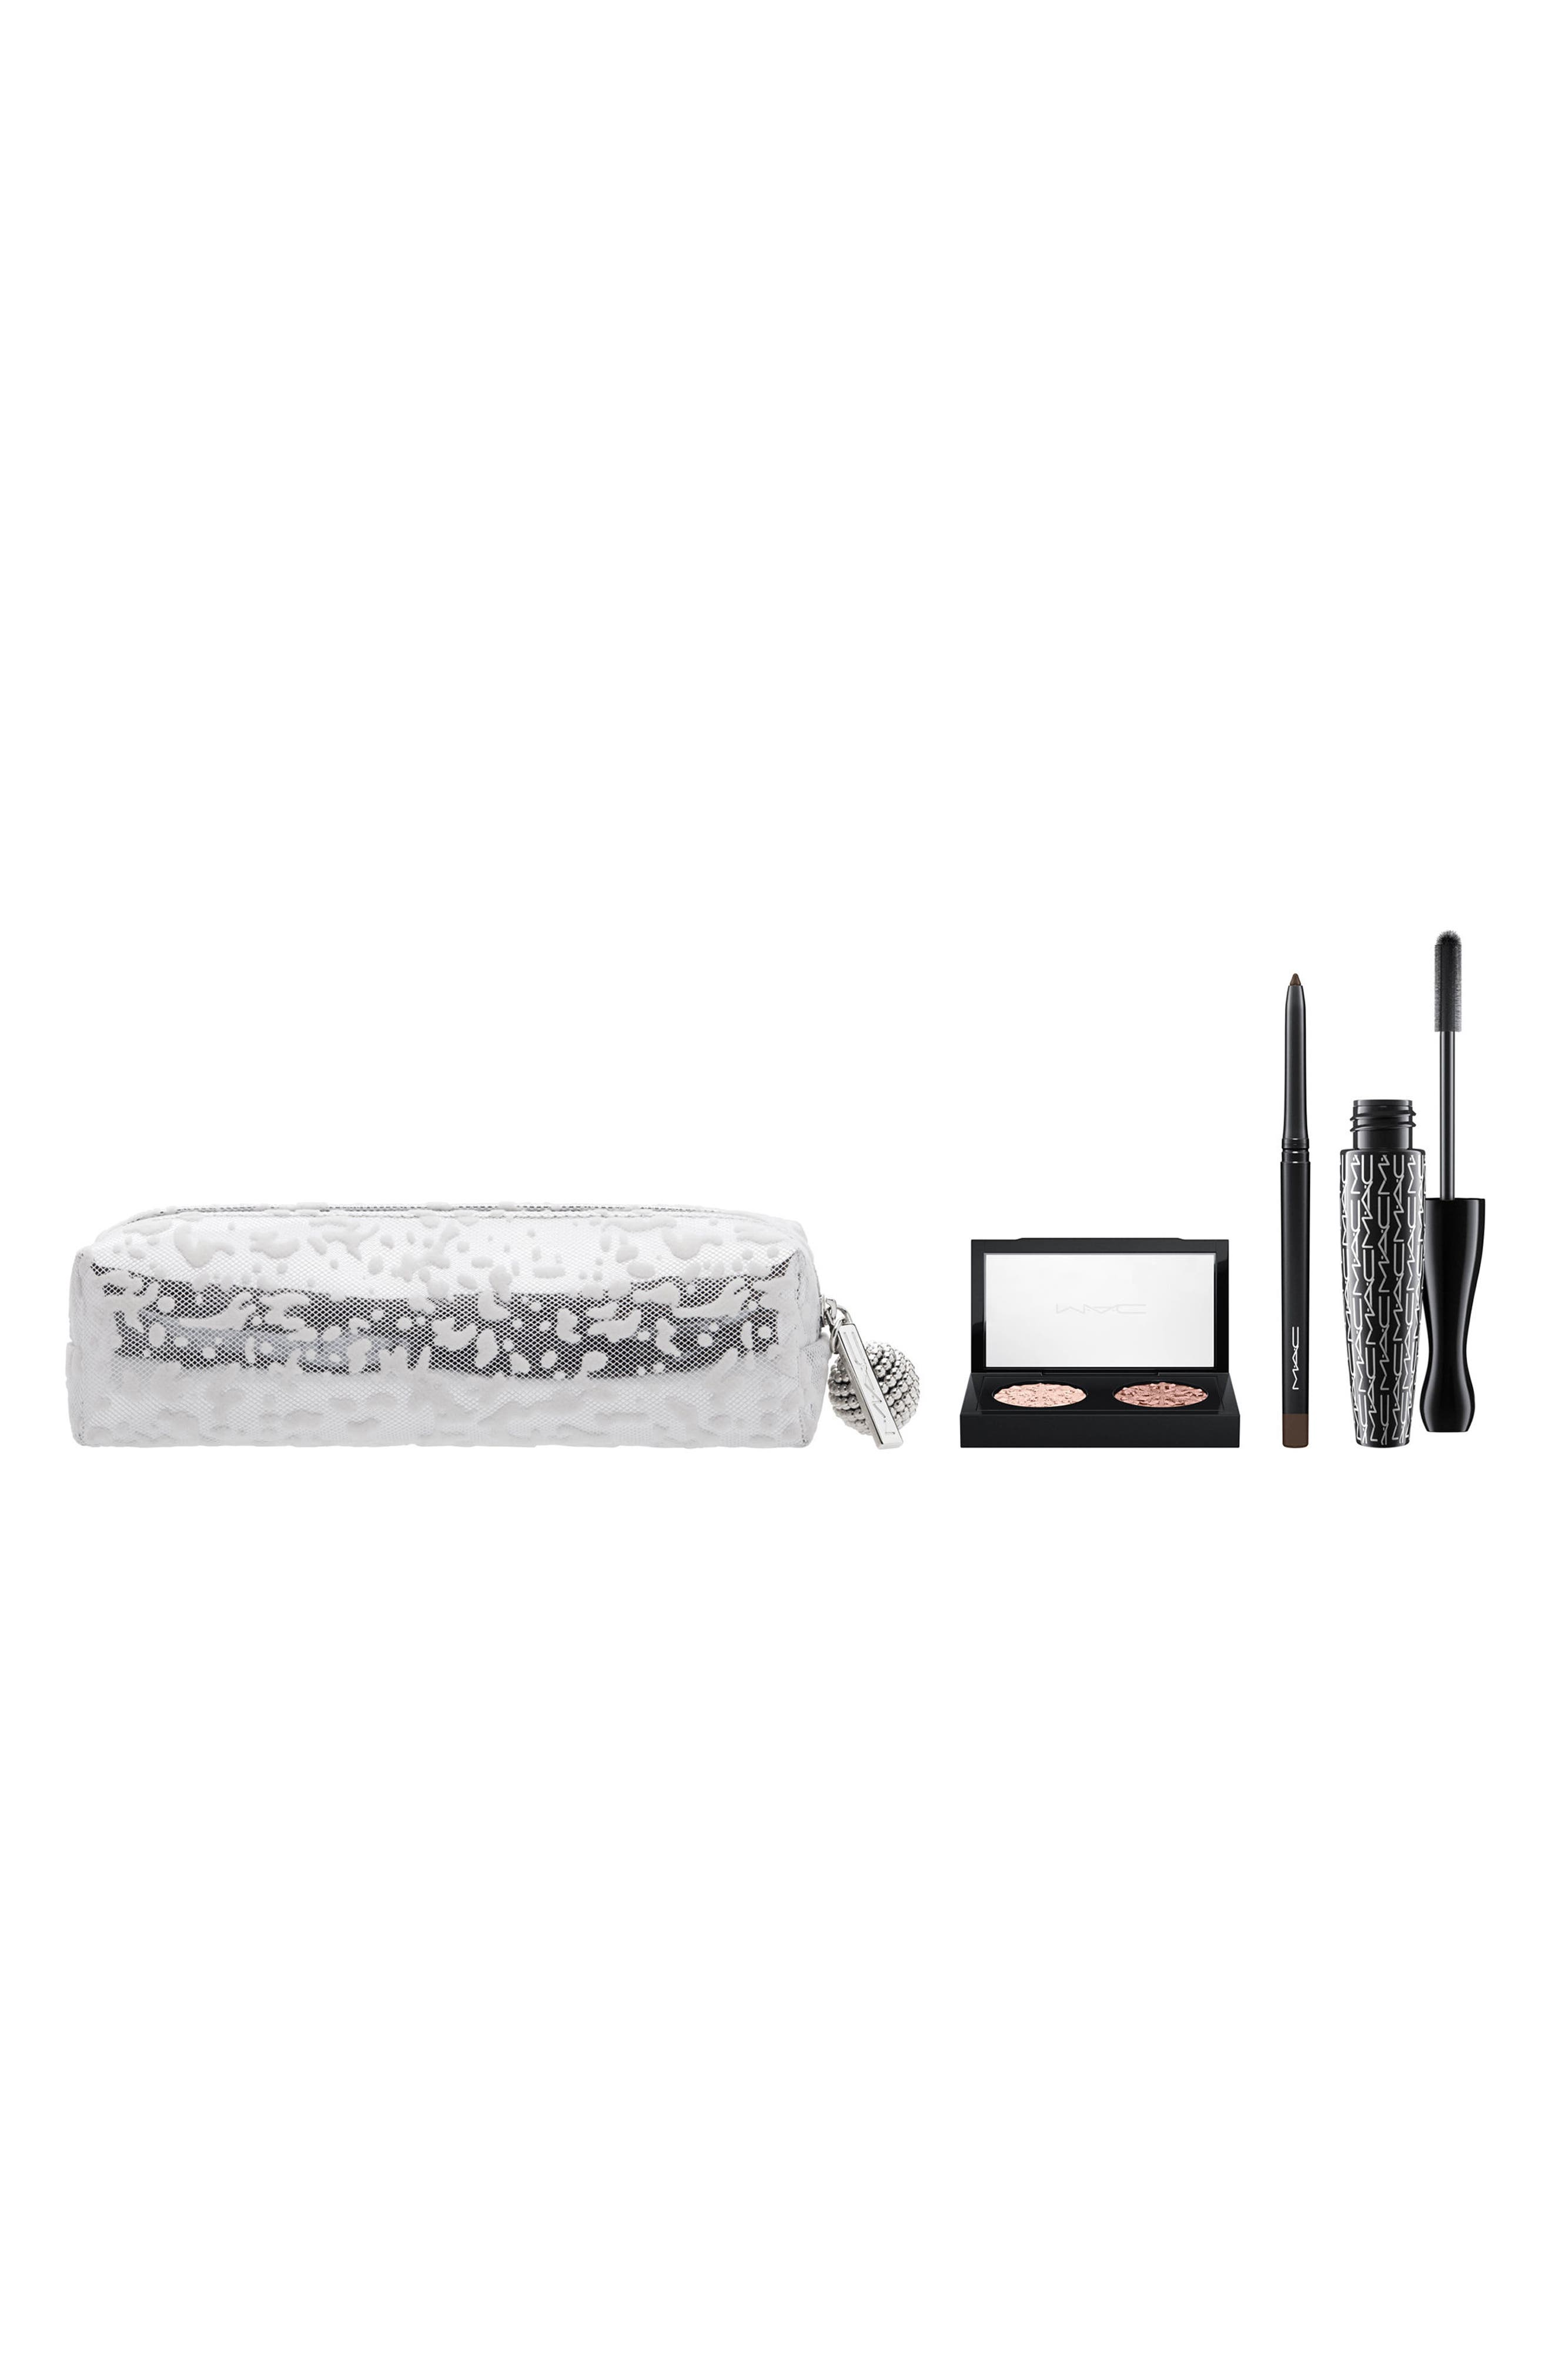 MAC Snow Ball Smoky Gold Eye Bag,                             Main thumbnail 1, color,                             000